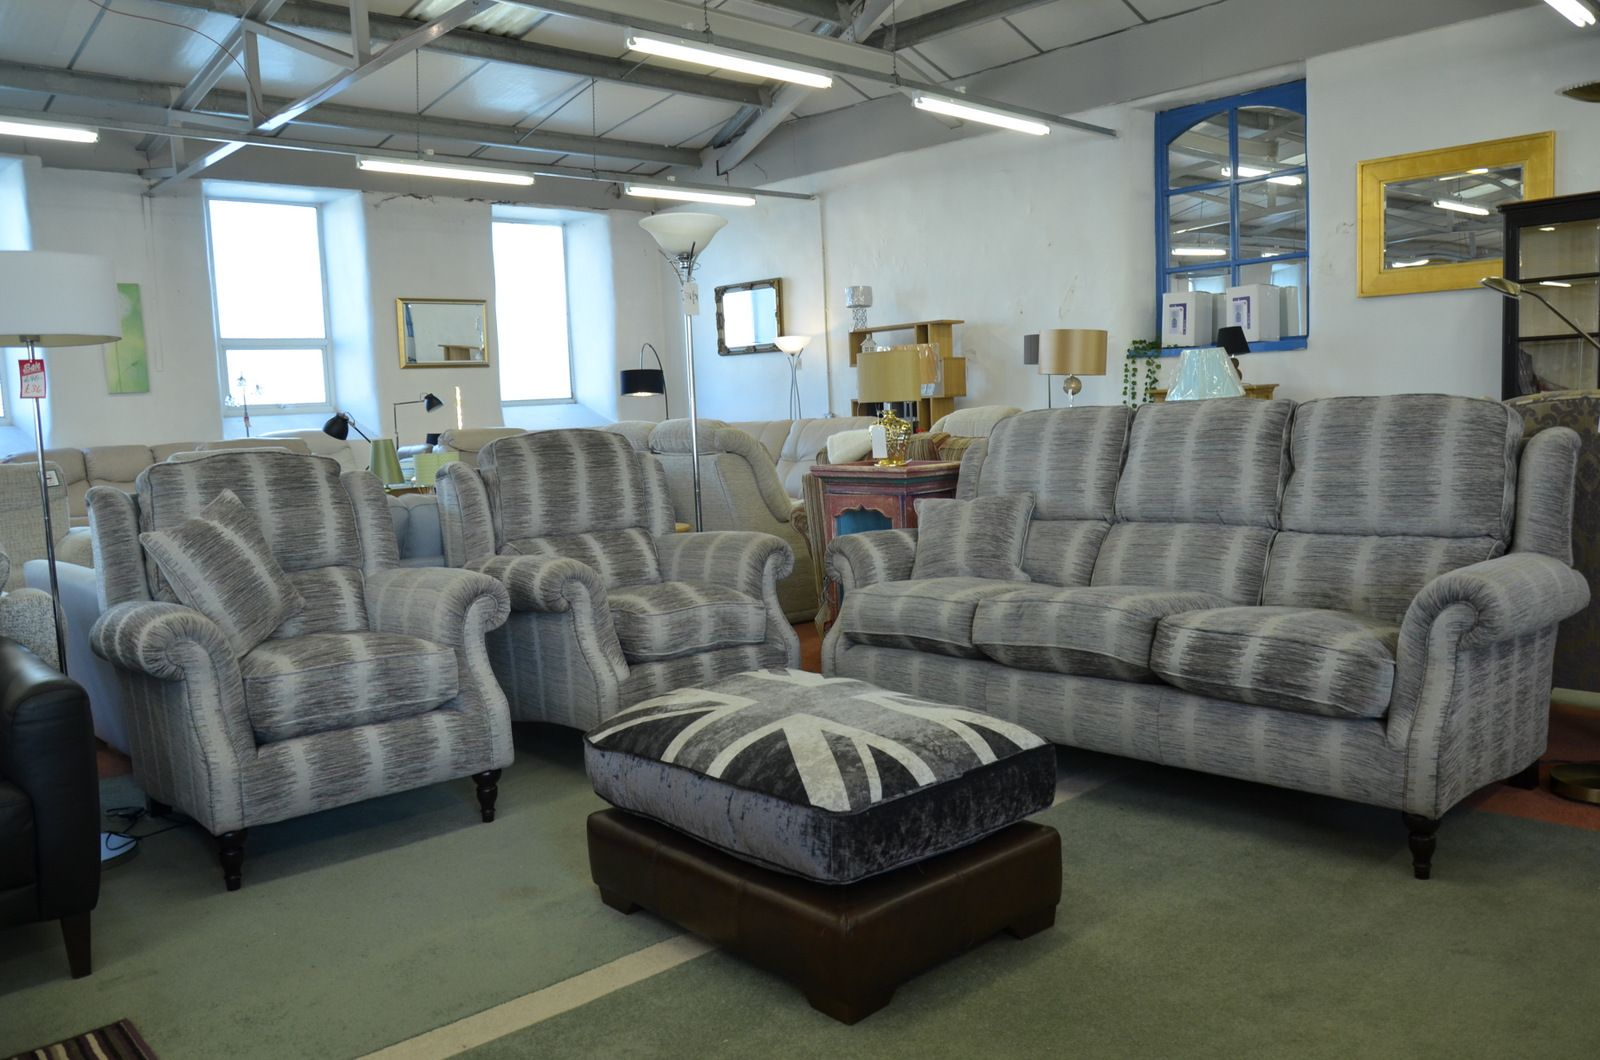 Admirable Henley 3 Seater Sofa 2 Armchairs In Grey Fabric Evergreenethics Interior Chair Design Evergreenethicsorg